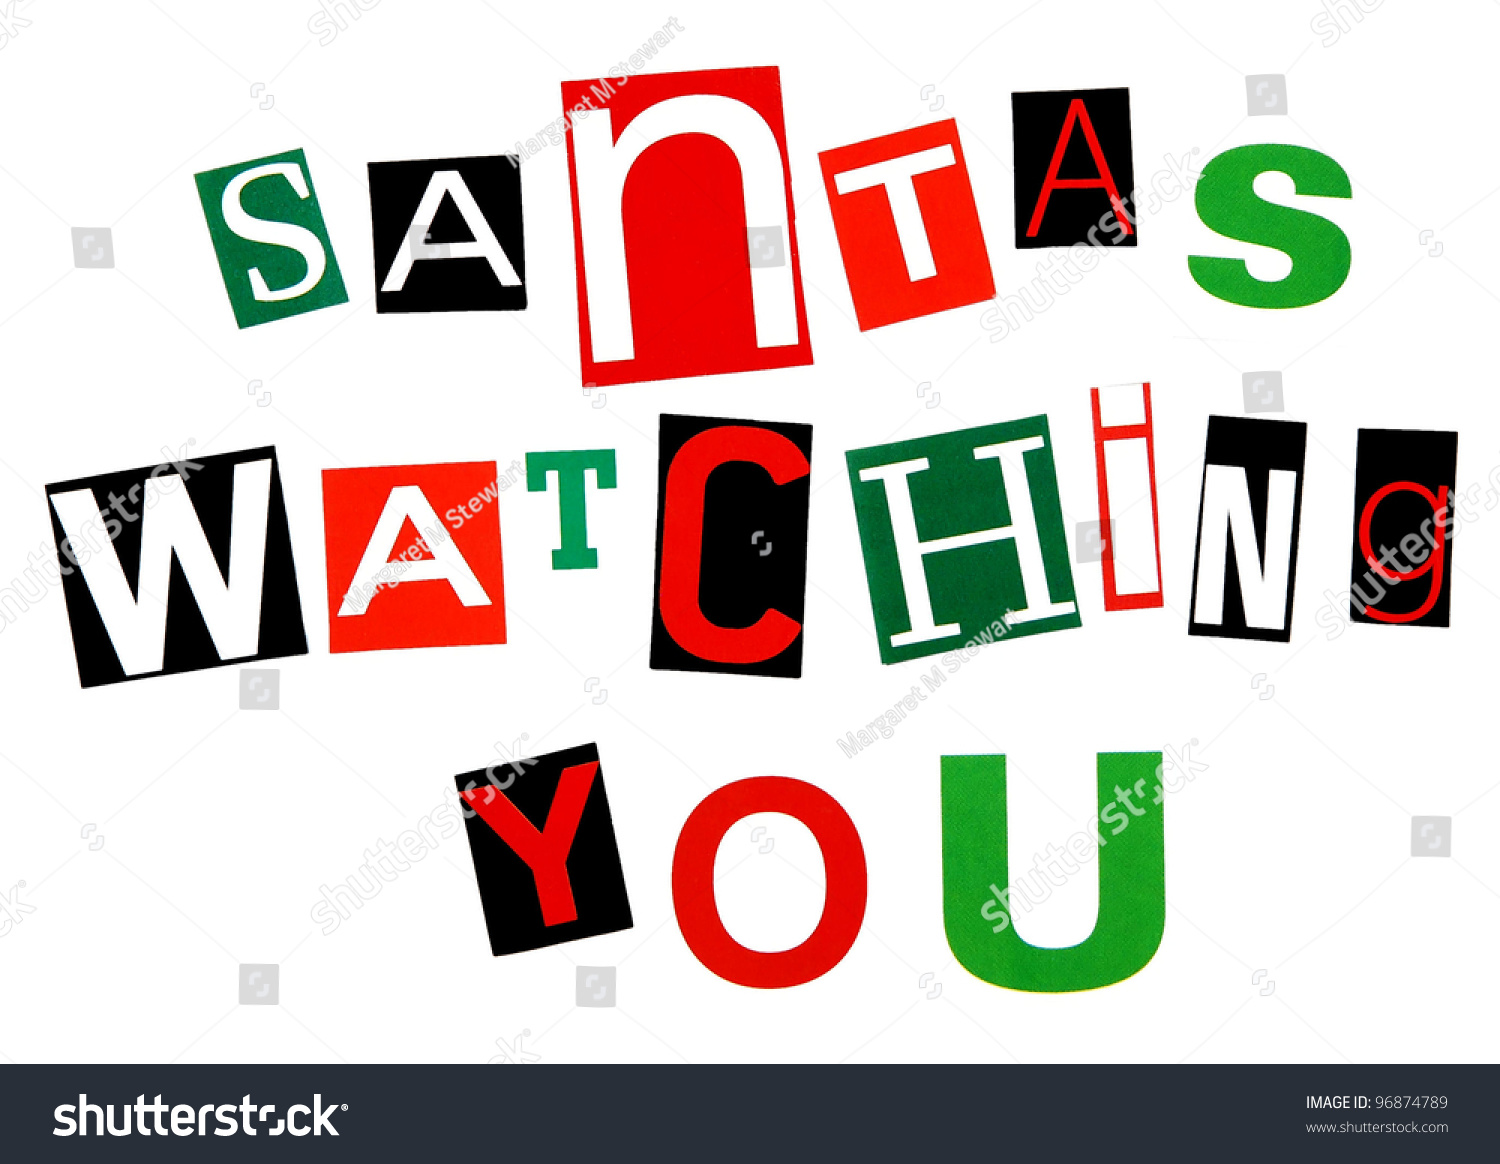 U0026quot Santas Watching You U0026quot  Threat Written In Red And Green